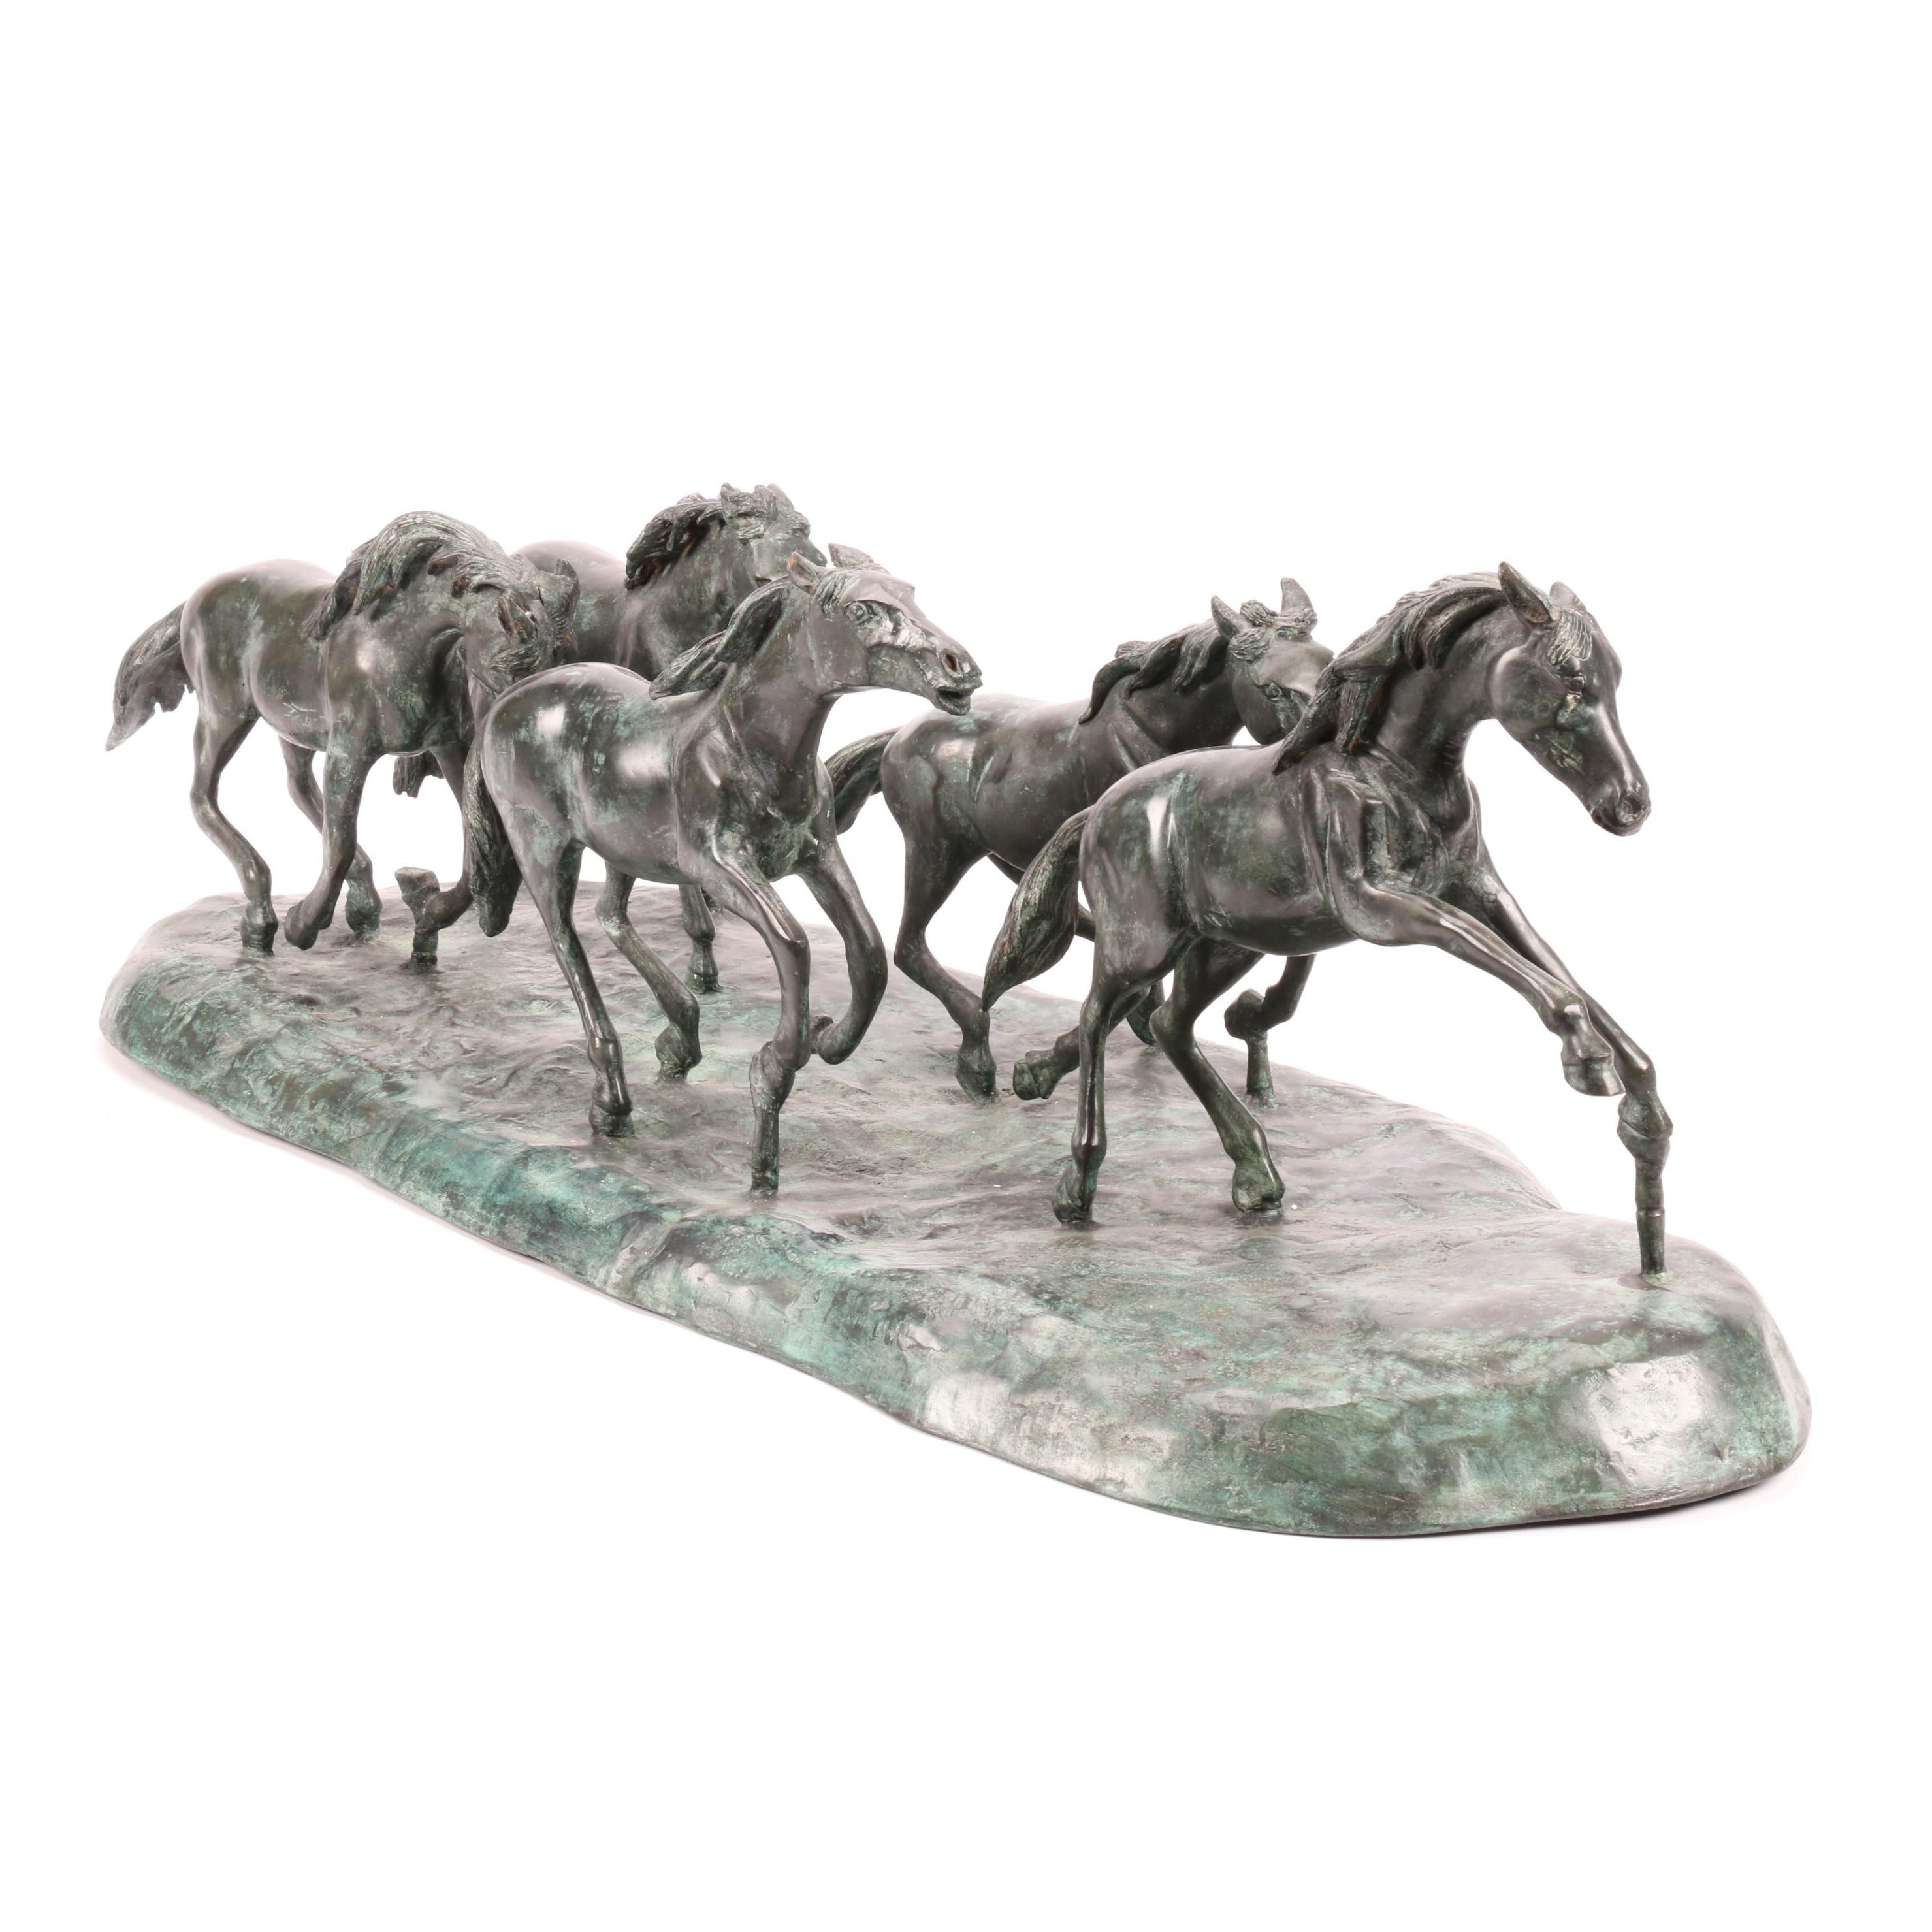 Cast Metal Galloping Wild Horses Statue or Sculpture